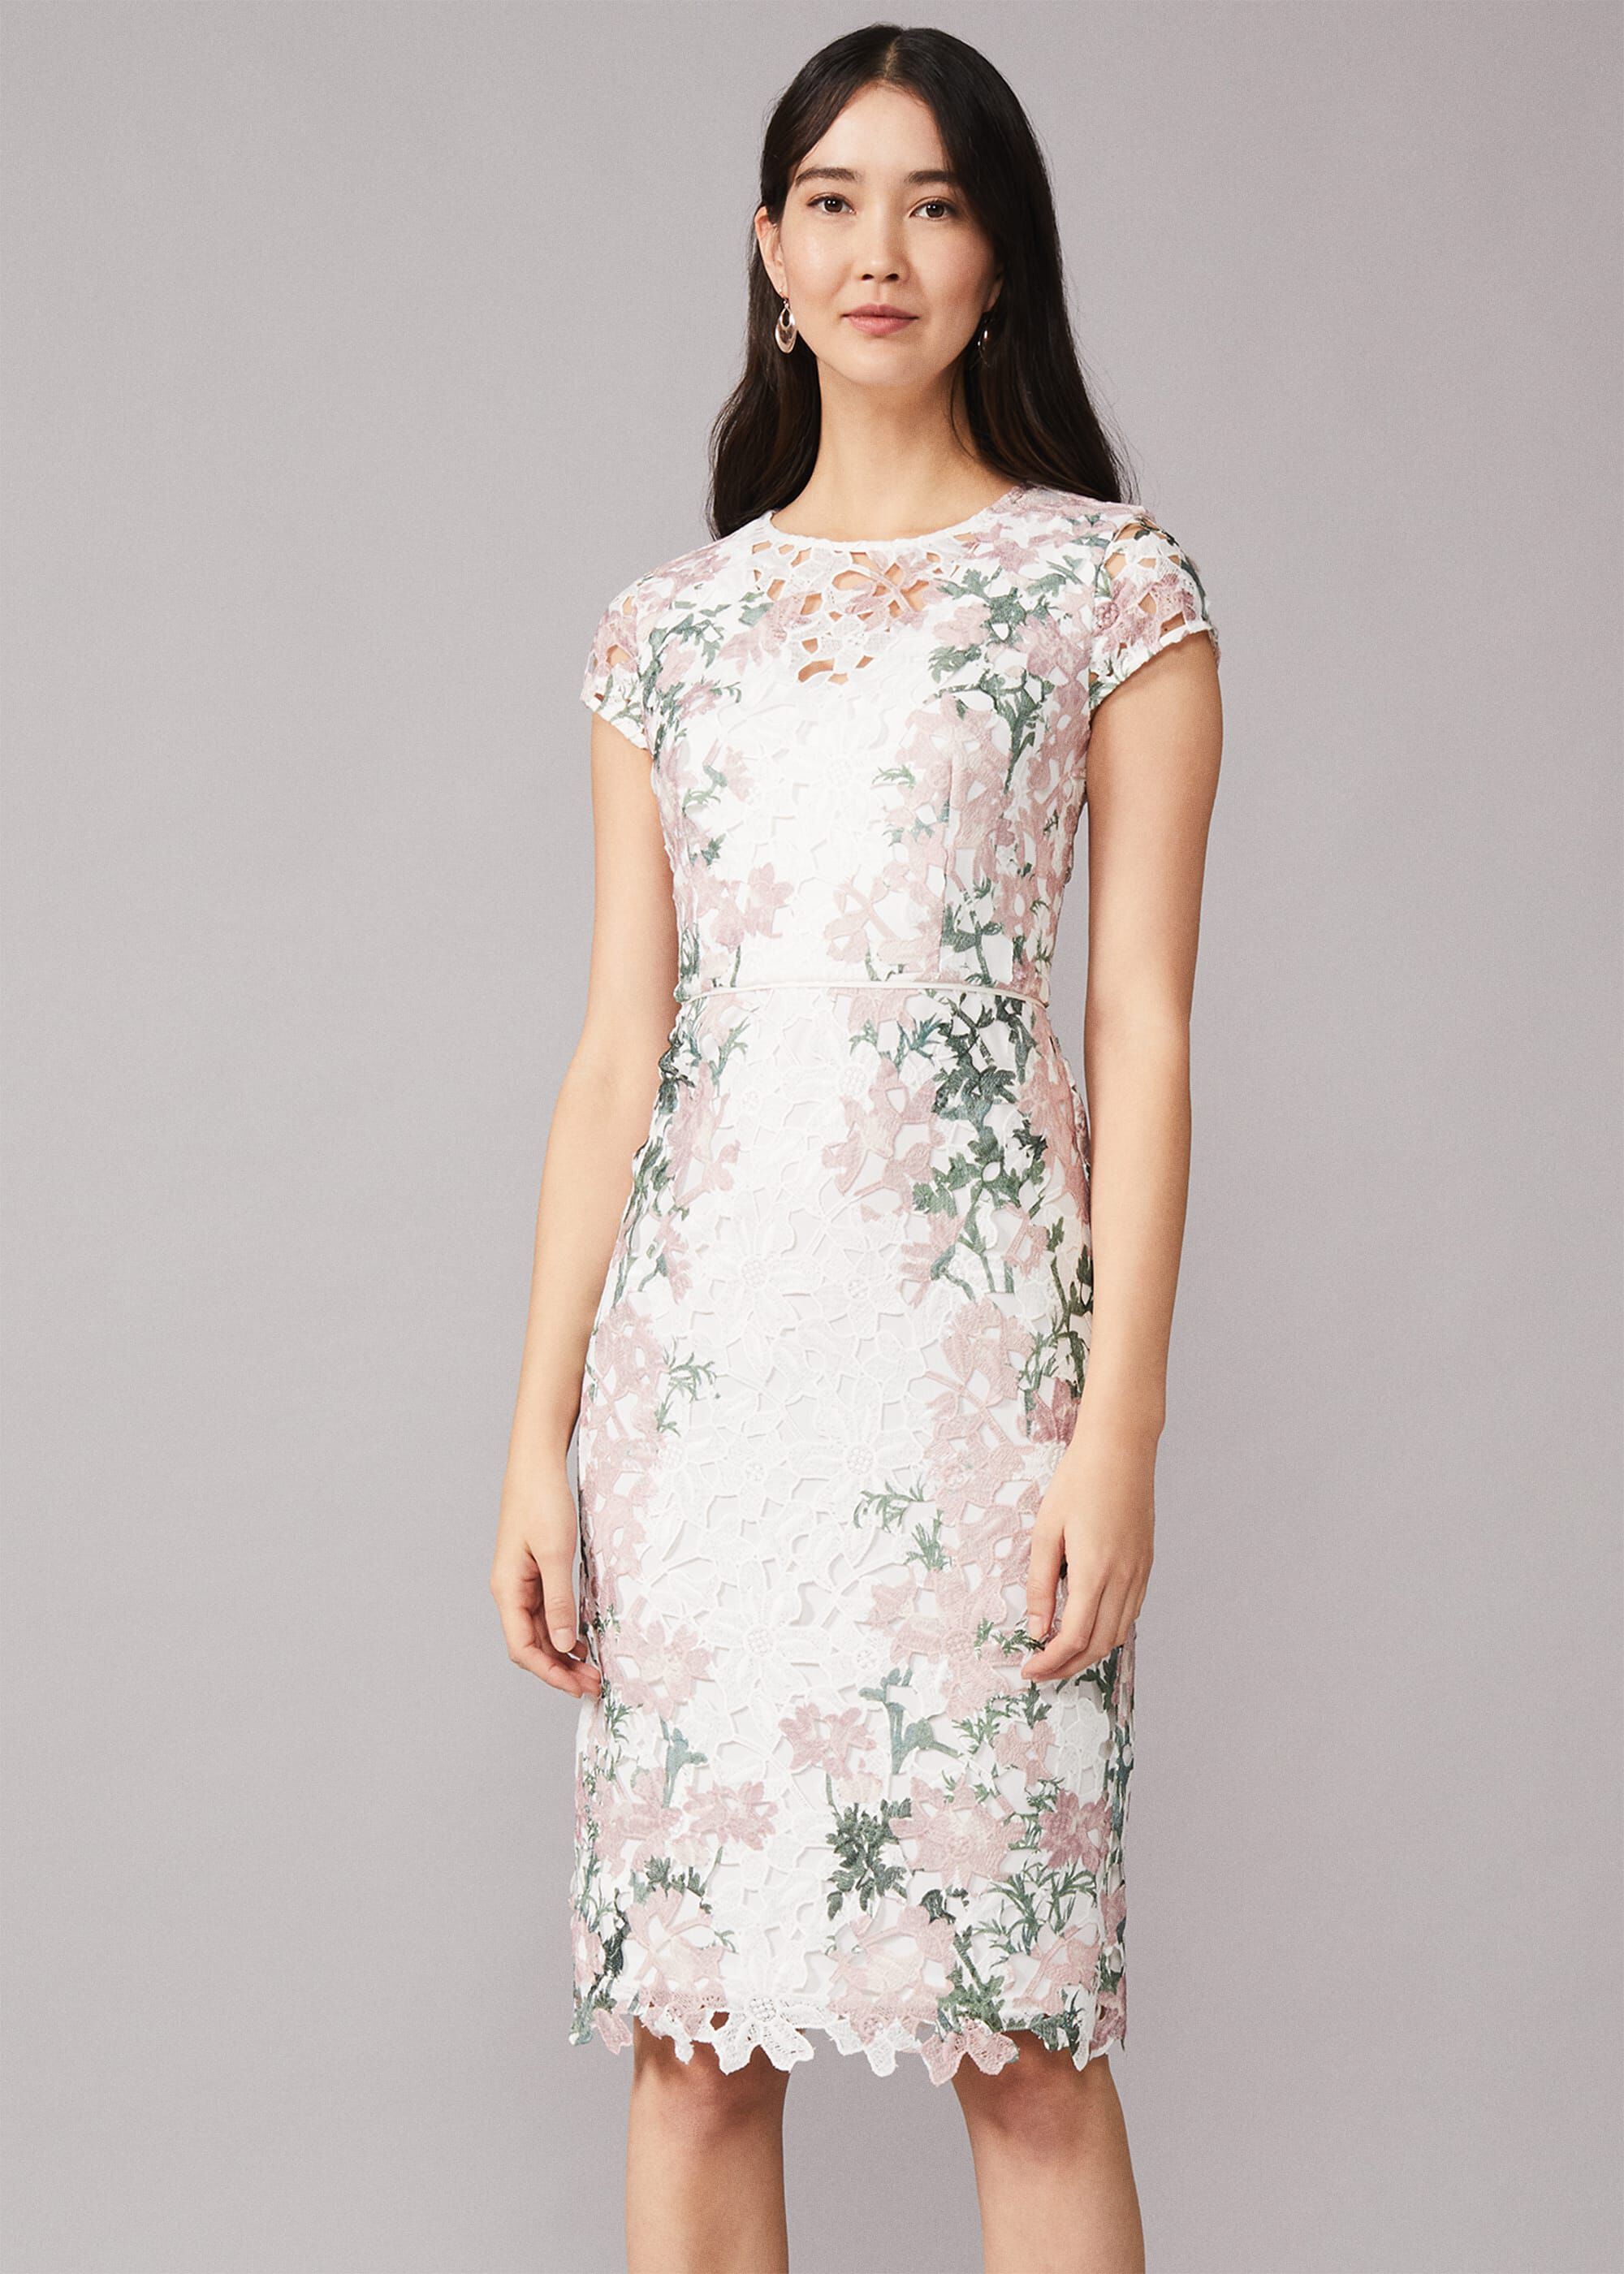 Phase Eight Kyra Lace Dress, Pink, Fitted, Occasion Dress